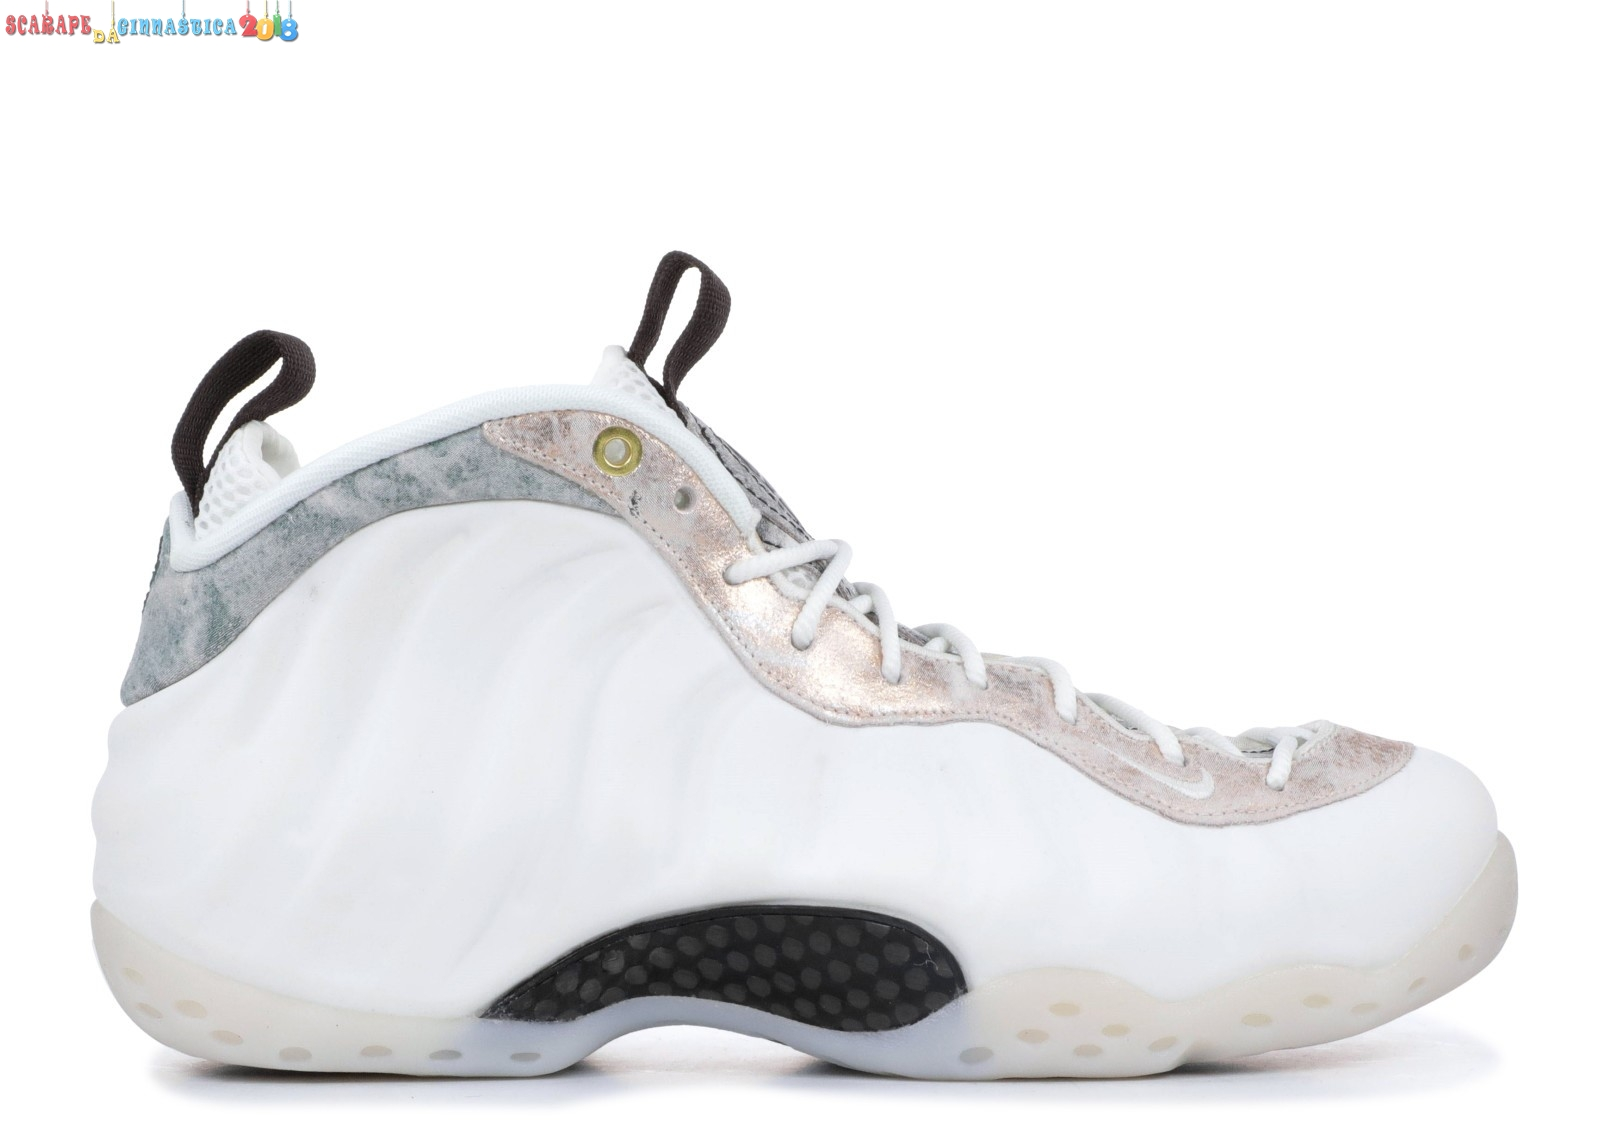 Acquisto Nike Air Foamposite One Bianca (aa3963-101) - Donna Online